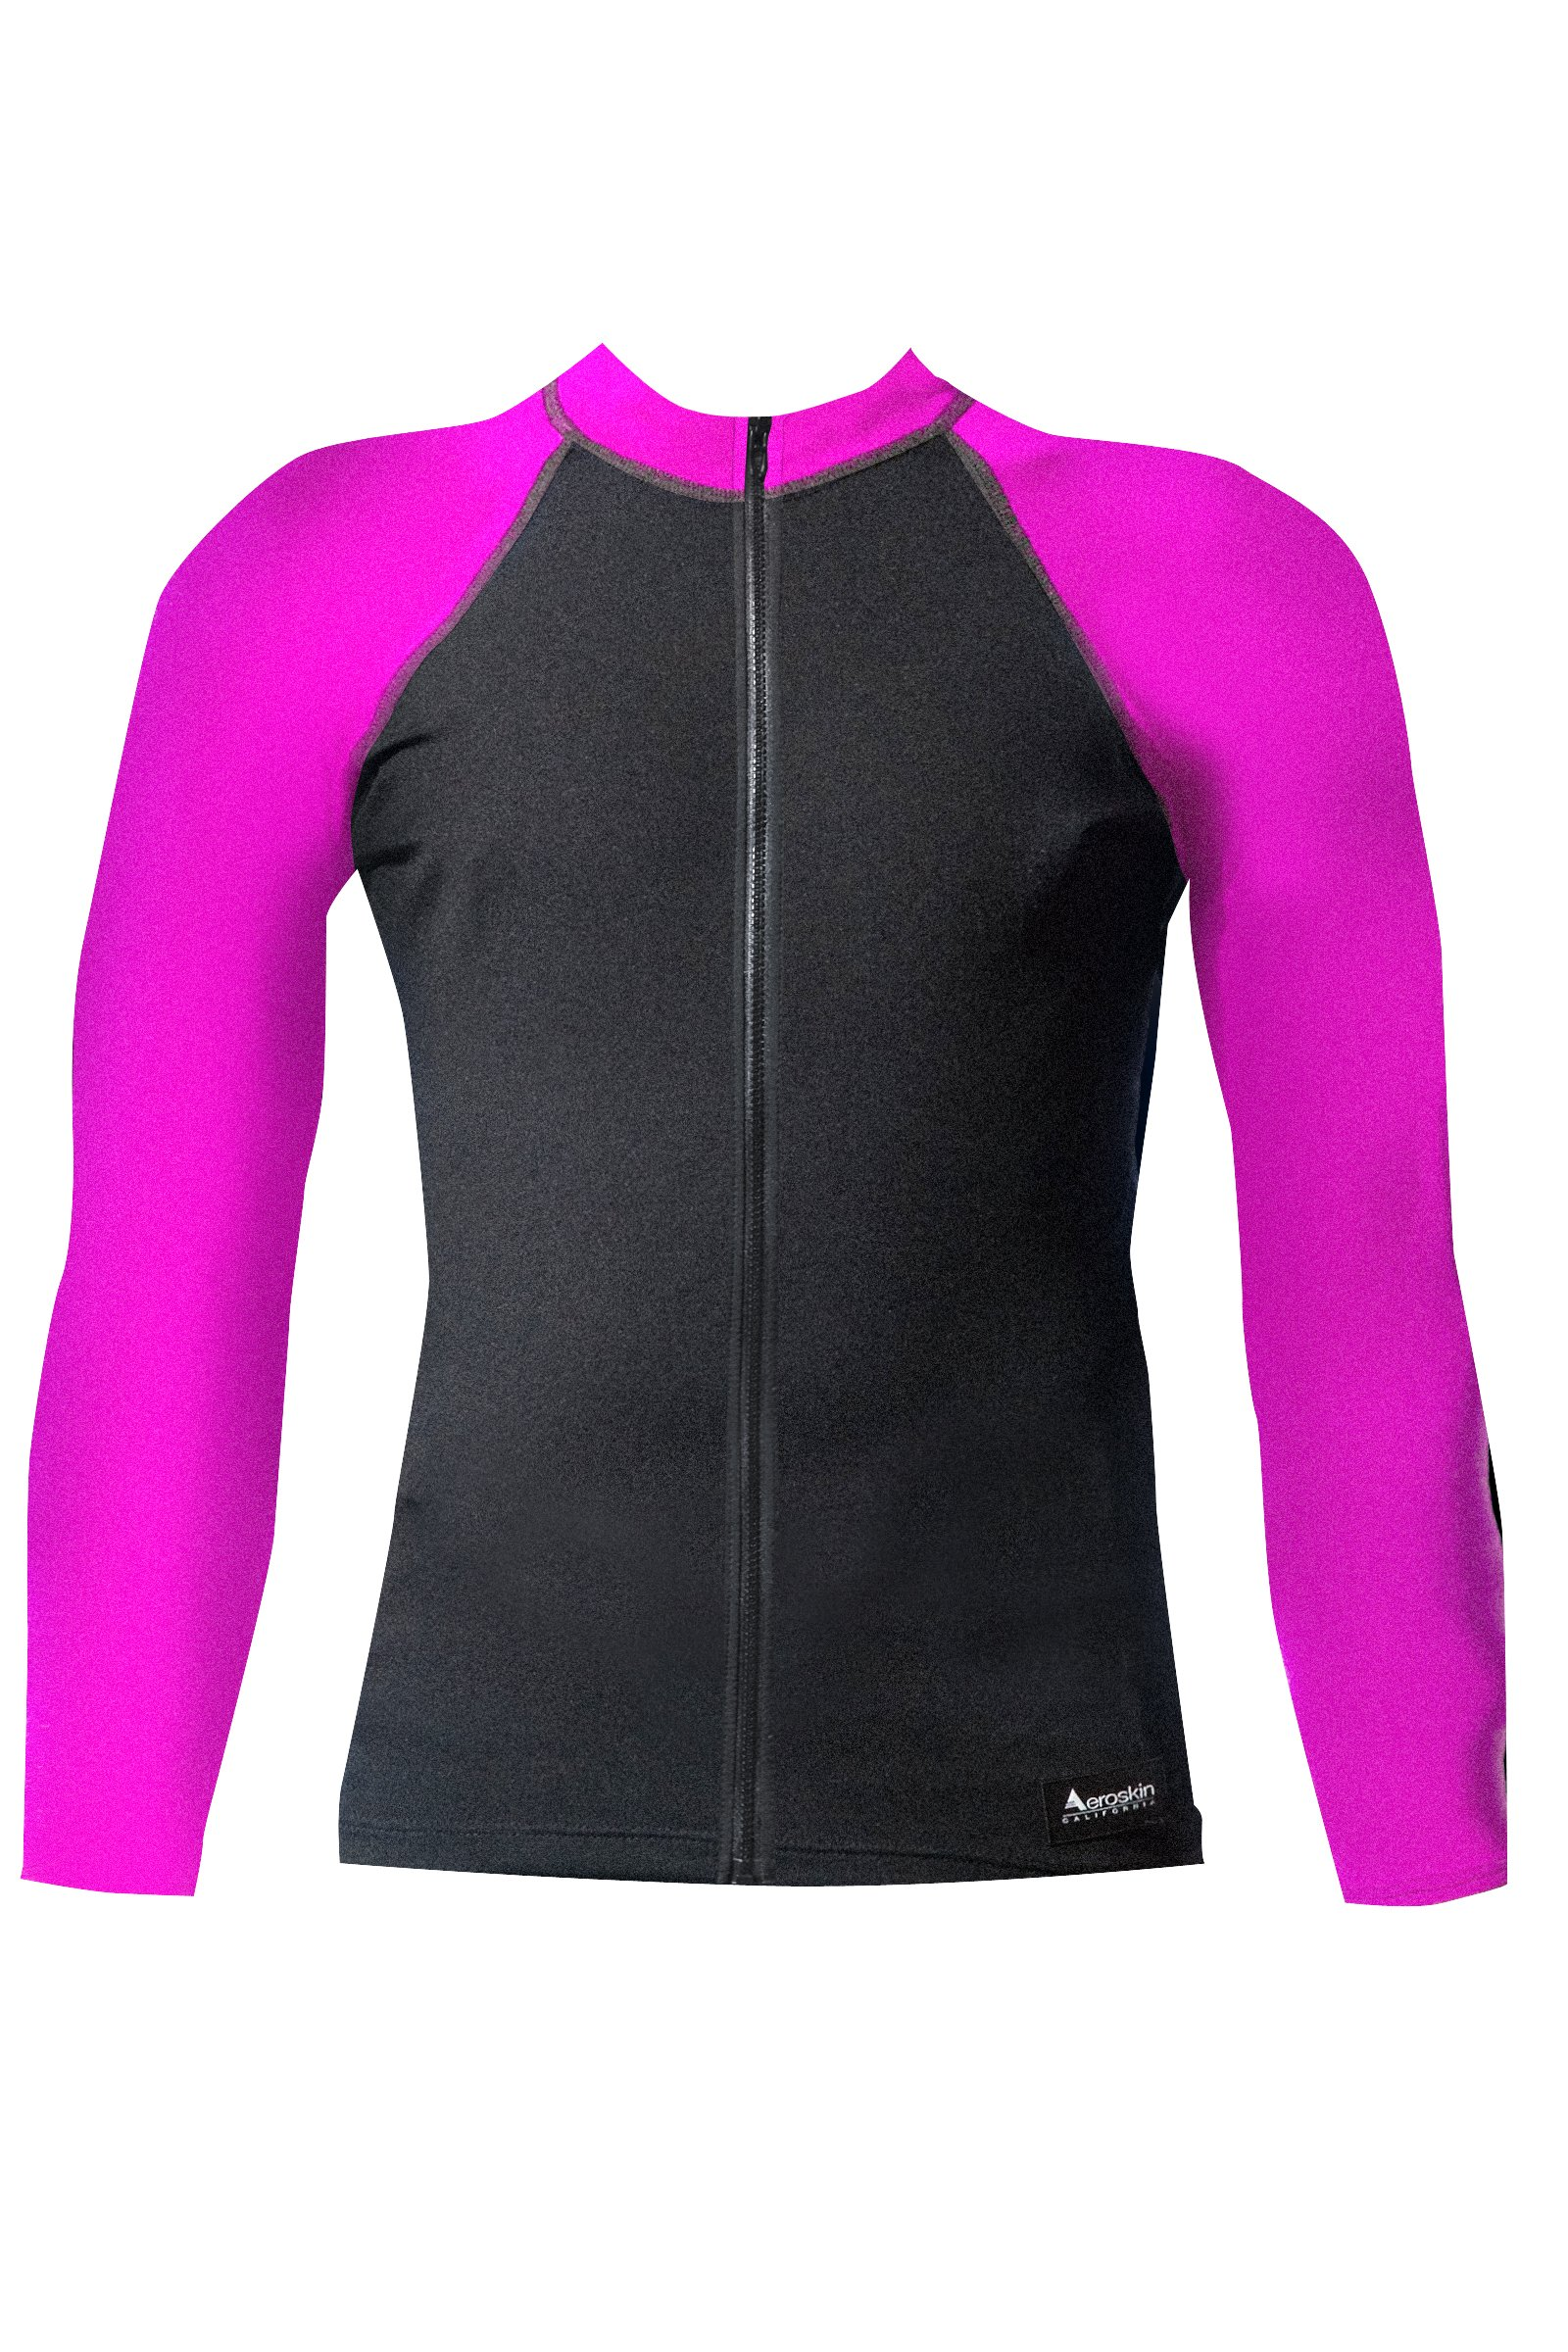 Aeroskin Raglan Long Sleeve Shirt with Color Accents, Fuzzy Collar and Front Zip (Black/Fuchsia, X-Small)